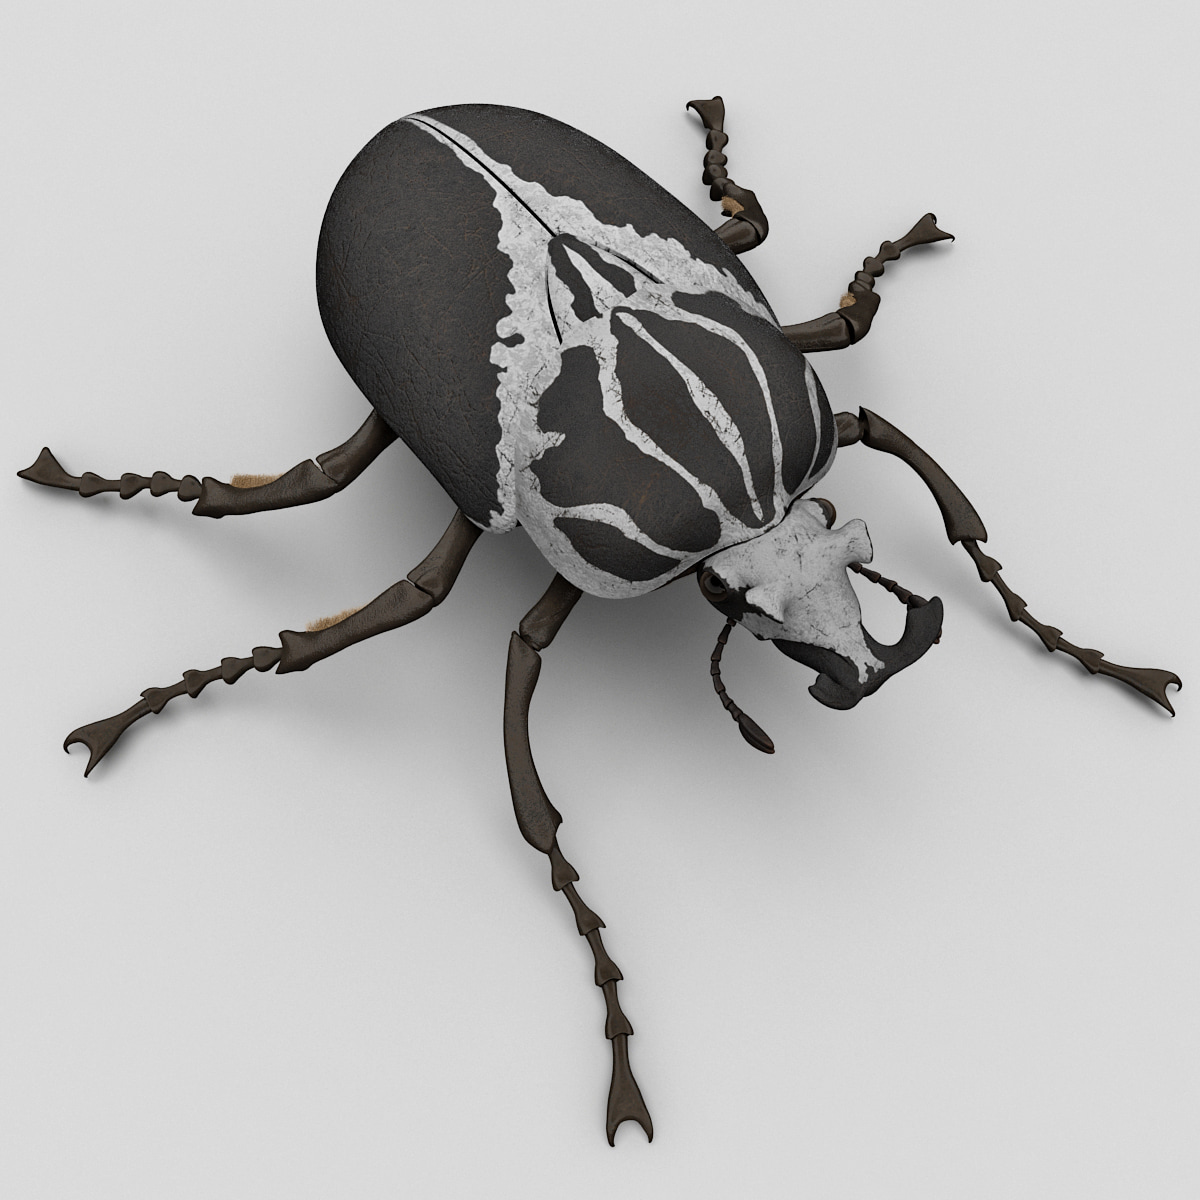 Goliath Beetle_0001.jpg